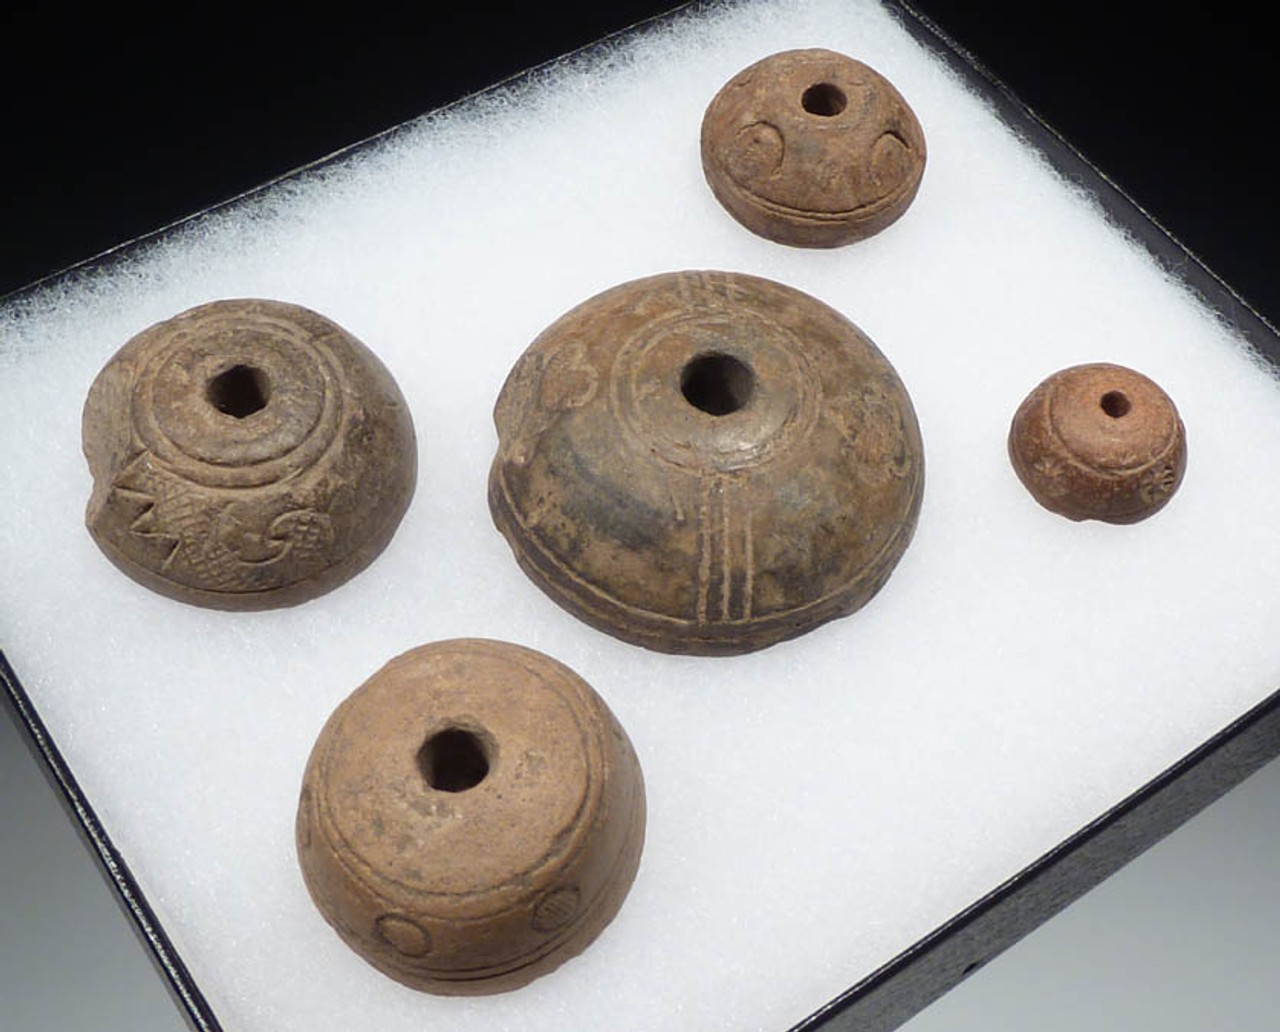 PC044 -  FIVE PRE-COLUMBIAN SPINDLE WHORLS USED IN ANCIENT TEXTILE MANUFACTURE FROM THE ANCIENT CHIMU CULTURE OF SOUTH AMERICA